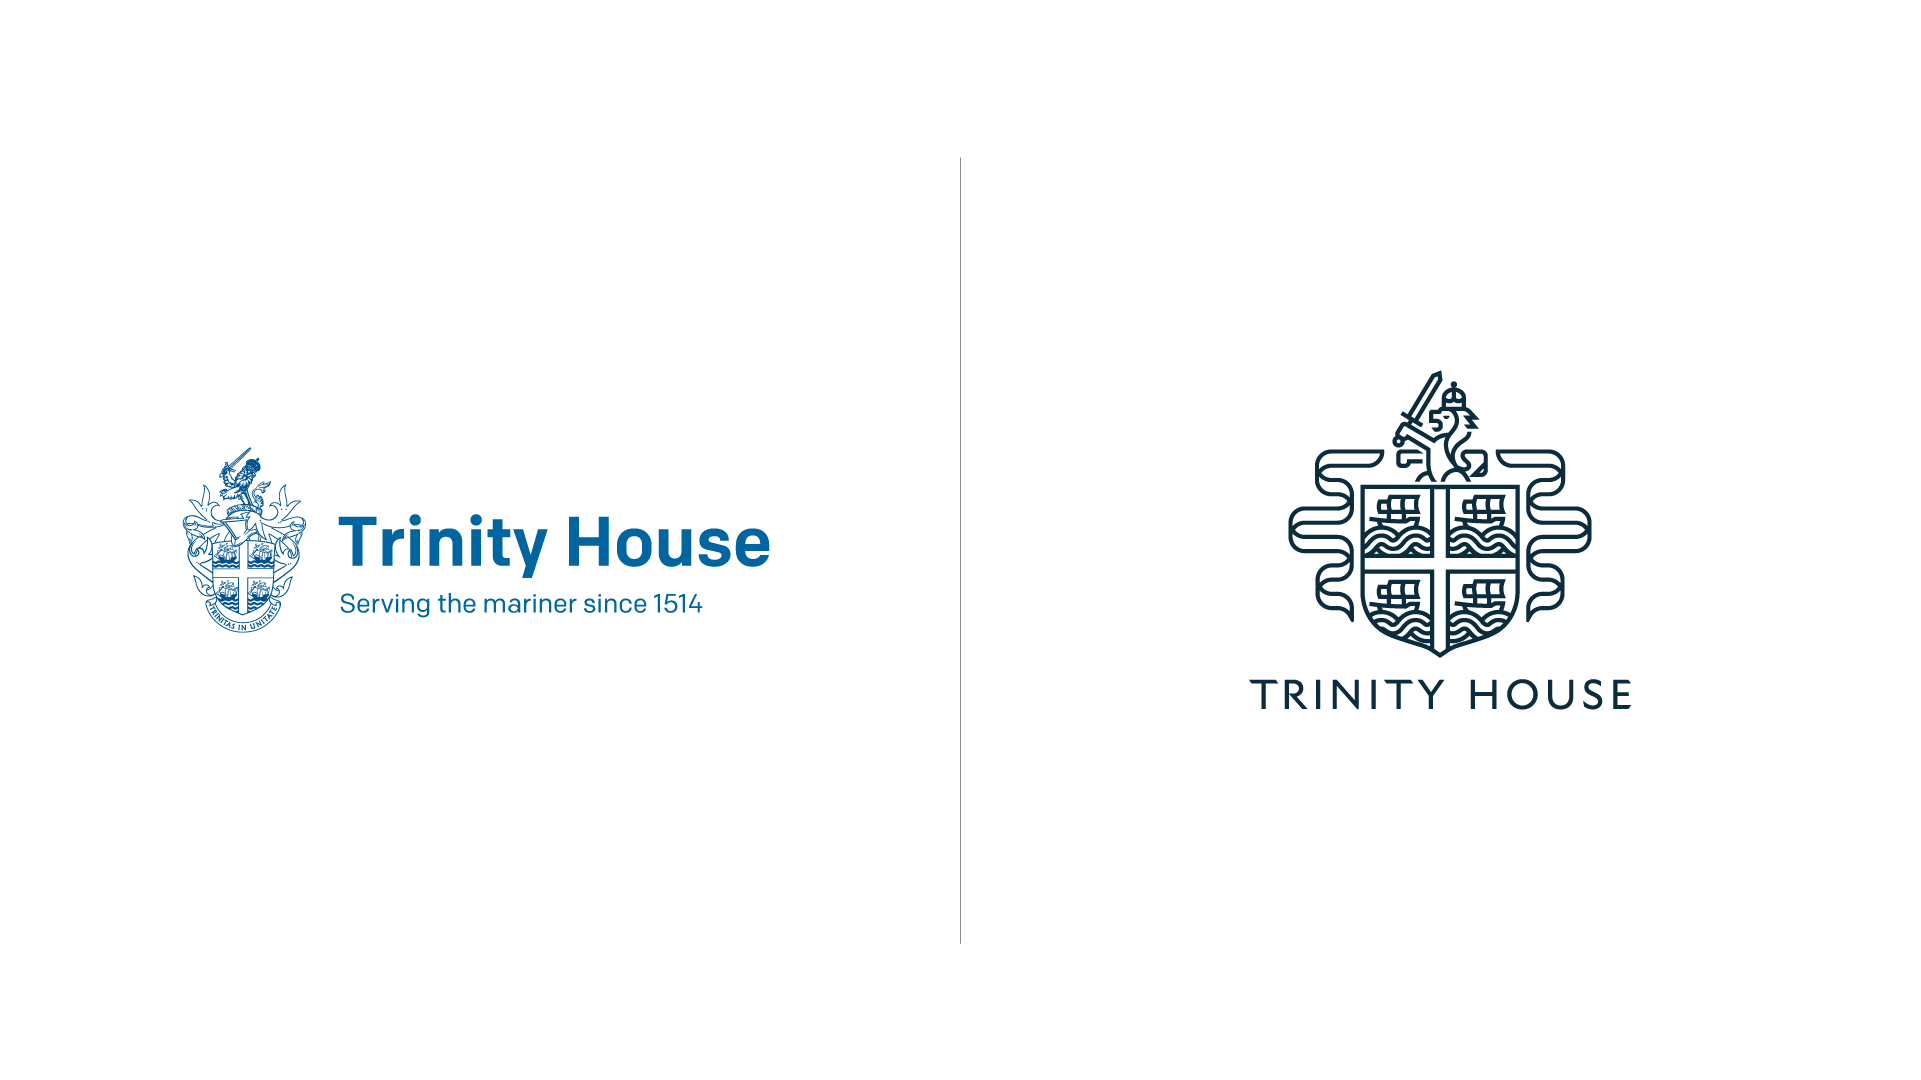 Trinity House - BetterBrandBuilder™ - Before & After